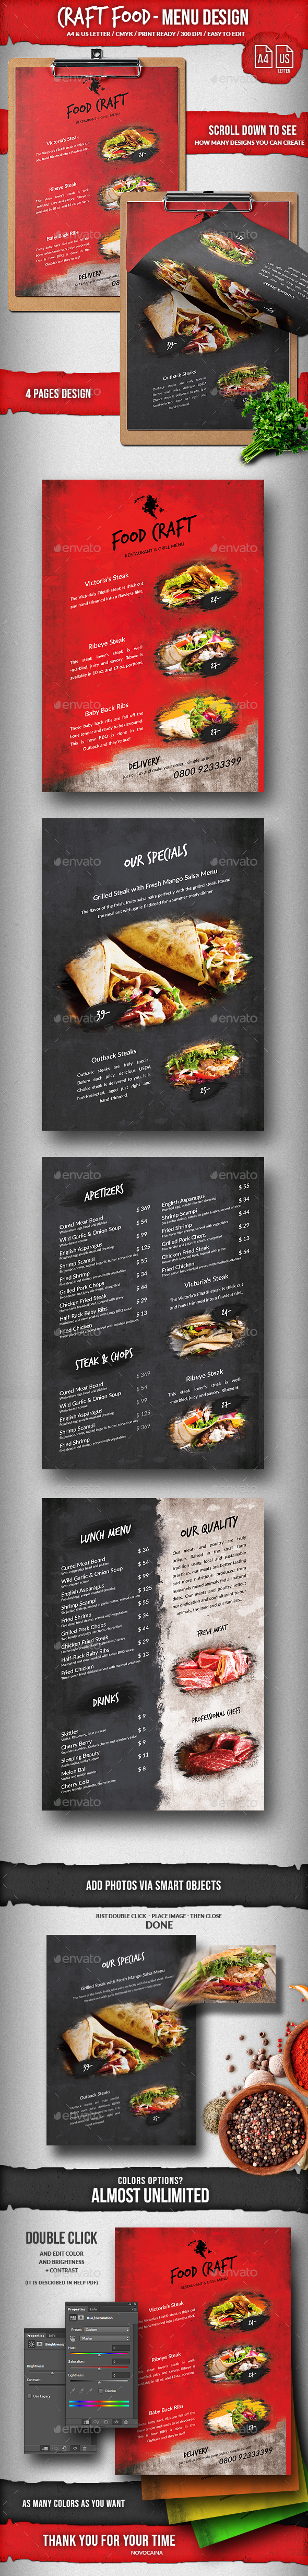 Craft Food Single 4 Pages A4 & US Letter Design - Food Menus Print Templates